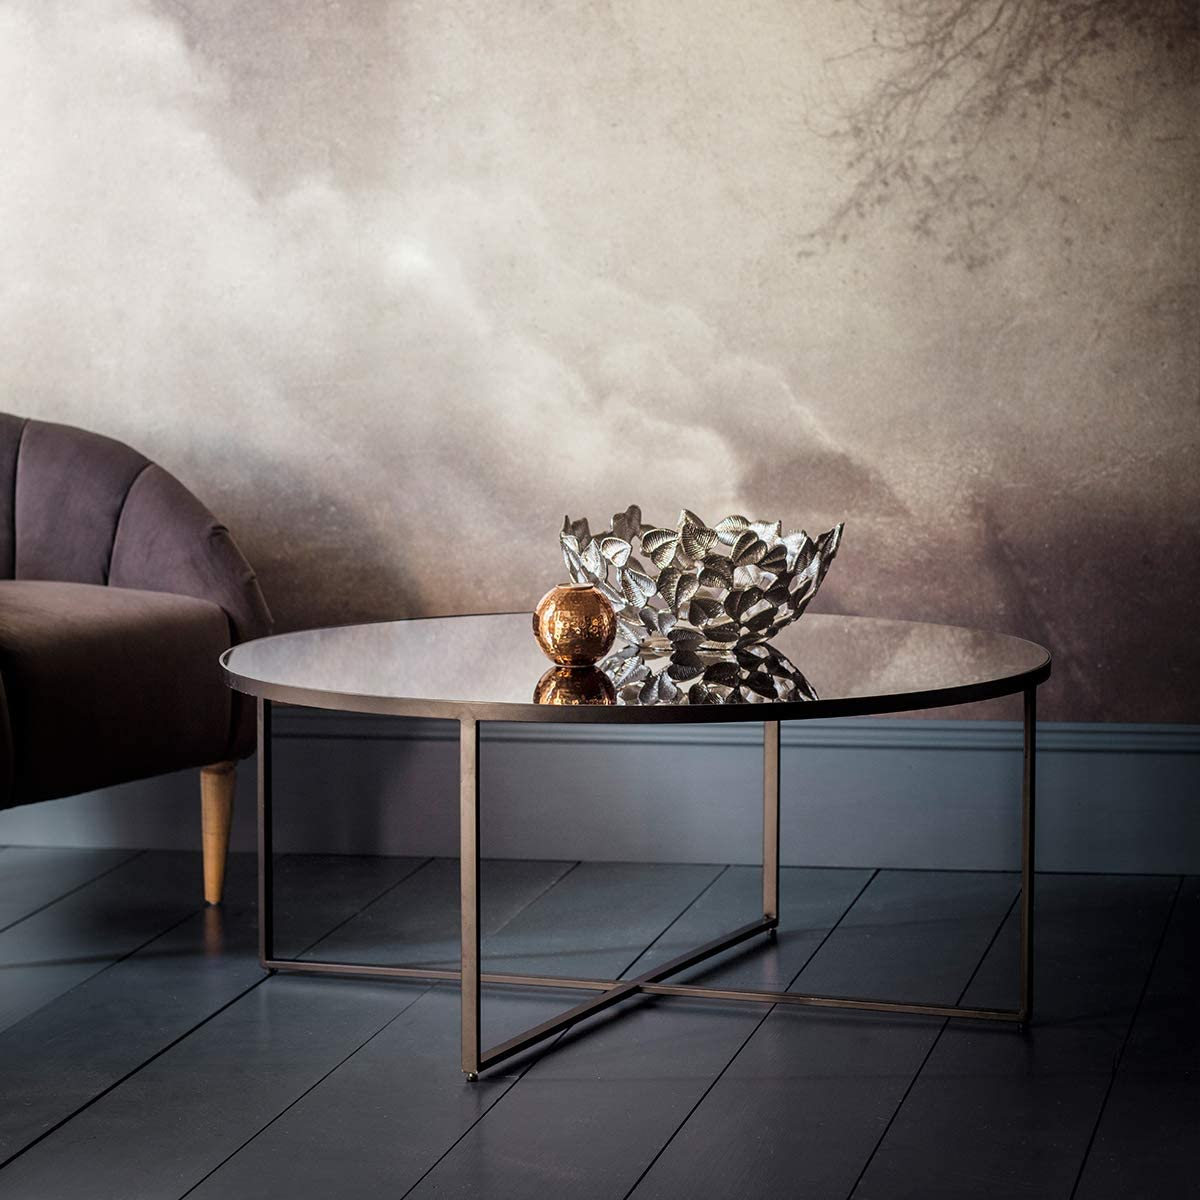 Gallery Direct Torrance Coffee Table 1000x1000x420mm Metal Glass Amazon Co Uk Kitchen Home [ 1200 x 1200 Pixel ]